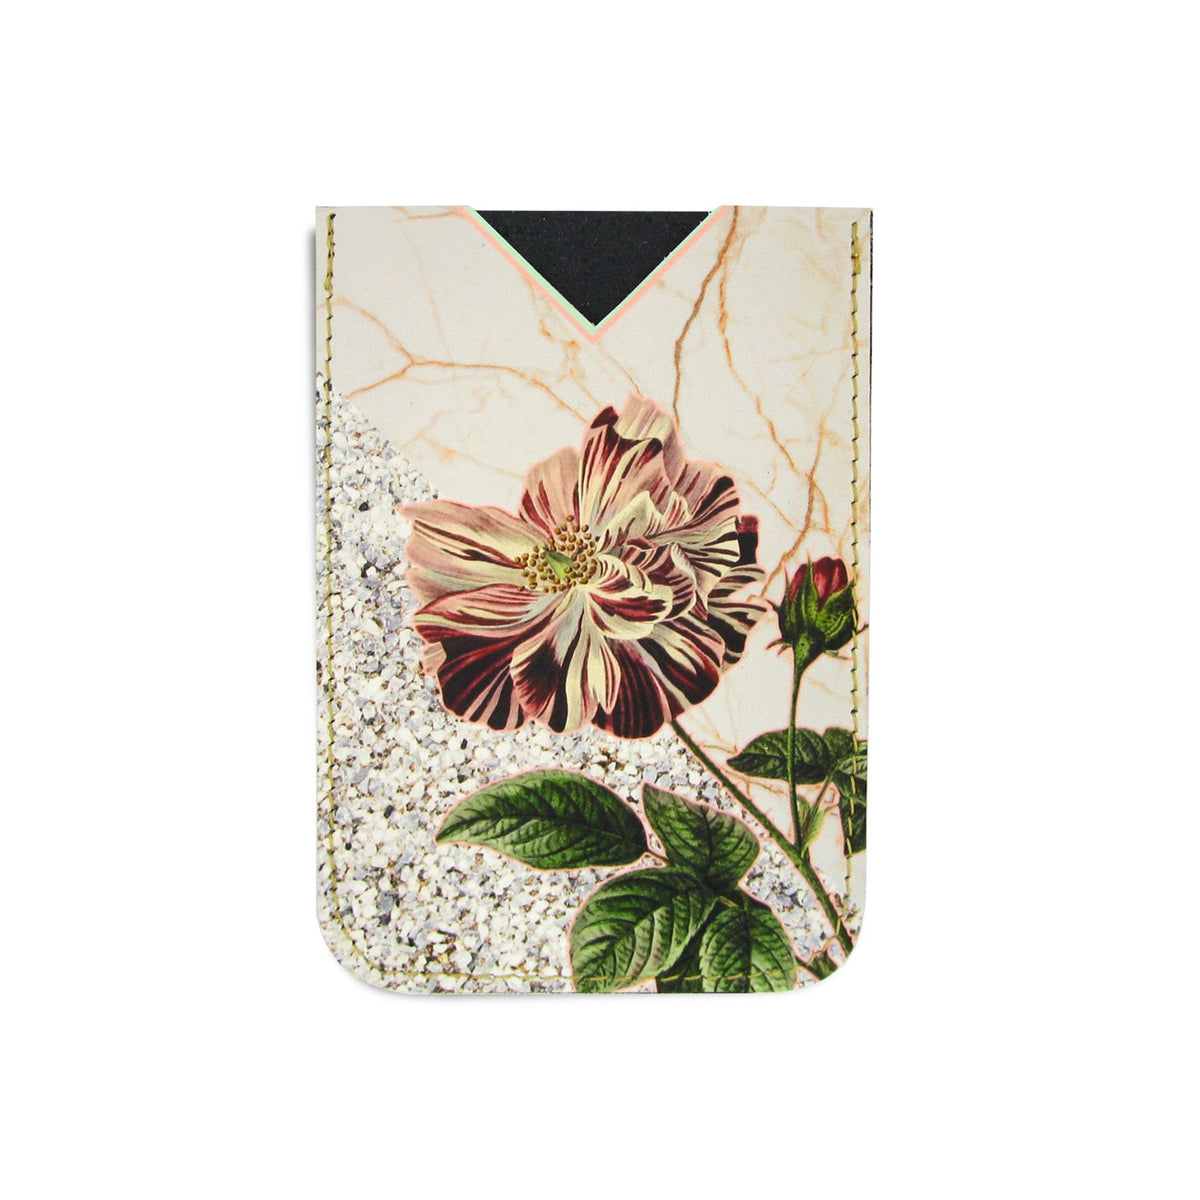 Leather Card Holder / Phone Sticker Wallet Pocket - Wild Rose Wallet Tovi Sorga Standard Card Holder Without personalisation Pink